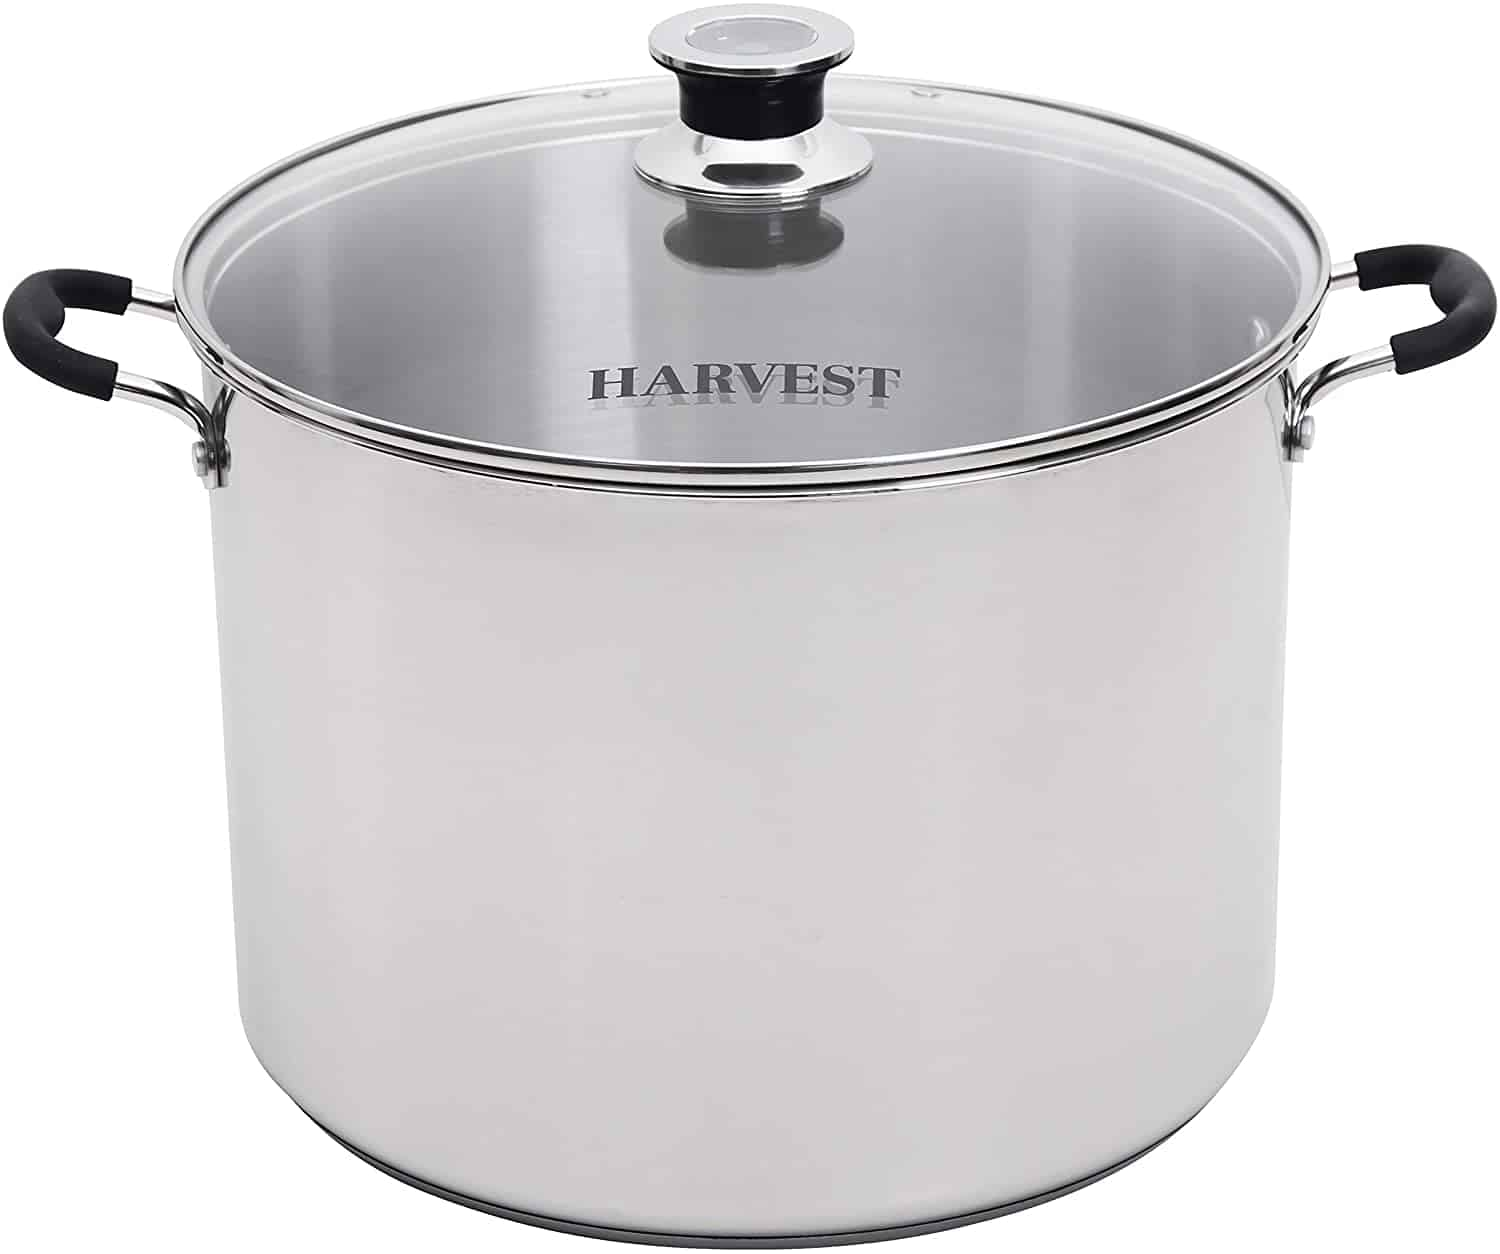 Roots & Branches VKP1130 Harvest Stainless Steel Multi-Use Canner with Temperature Indicator, Holds 7 Quart Jars, 20 Quart Liquid Capacity